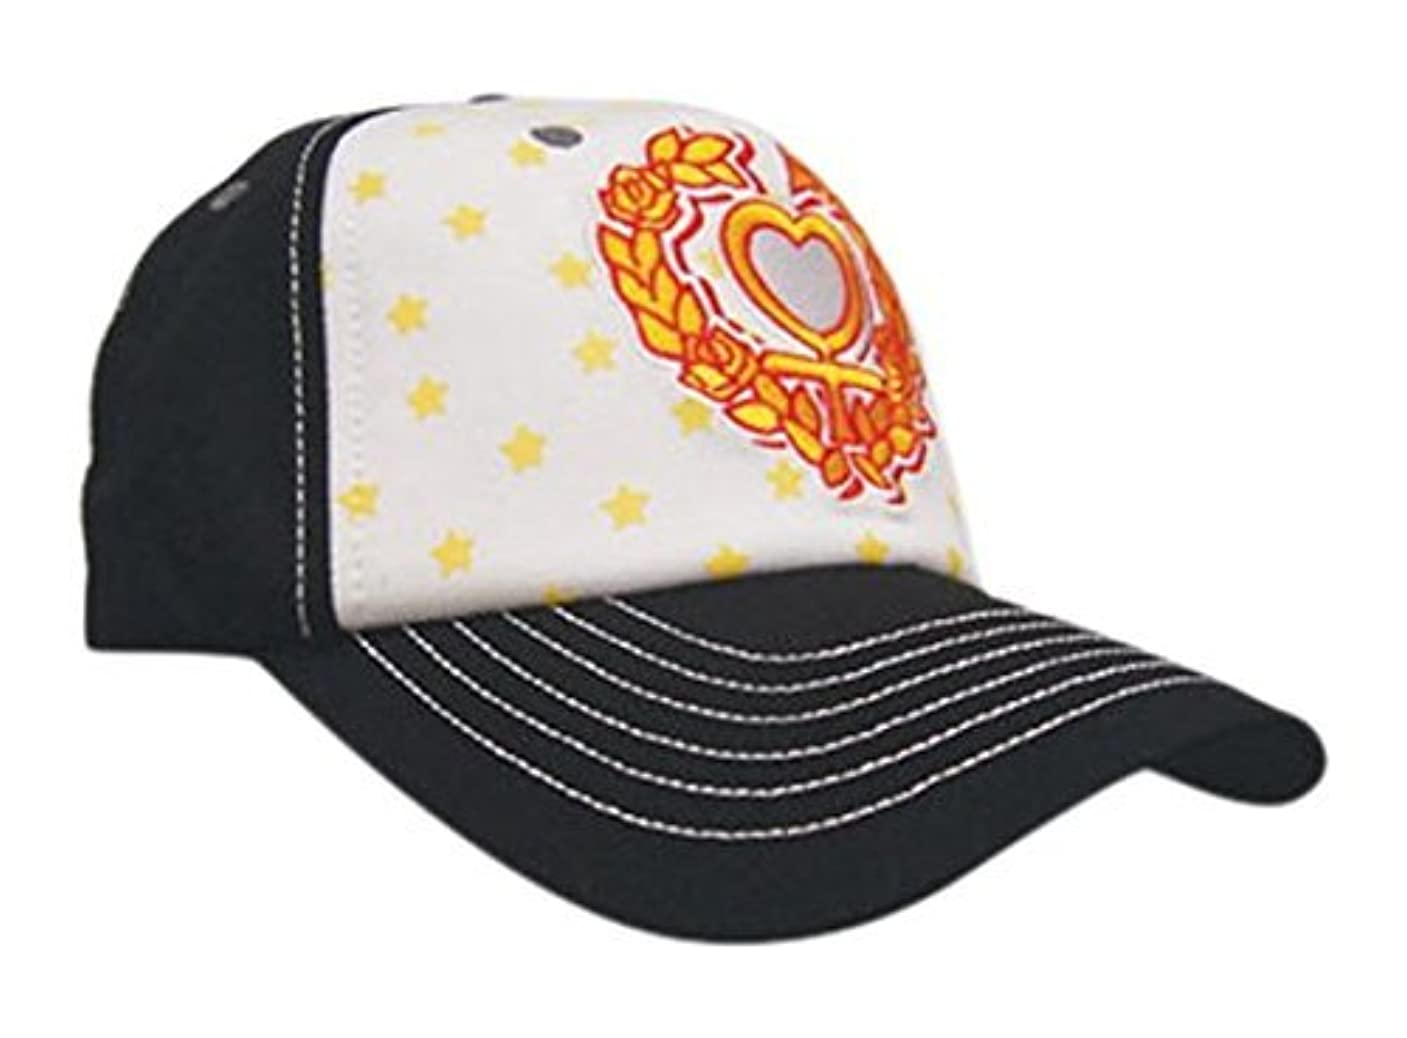 構造的オーバーフローレザーGreat Eastern Entertainment Sailor Moon Super S- Venus Cap [並行輸入品]